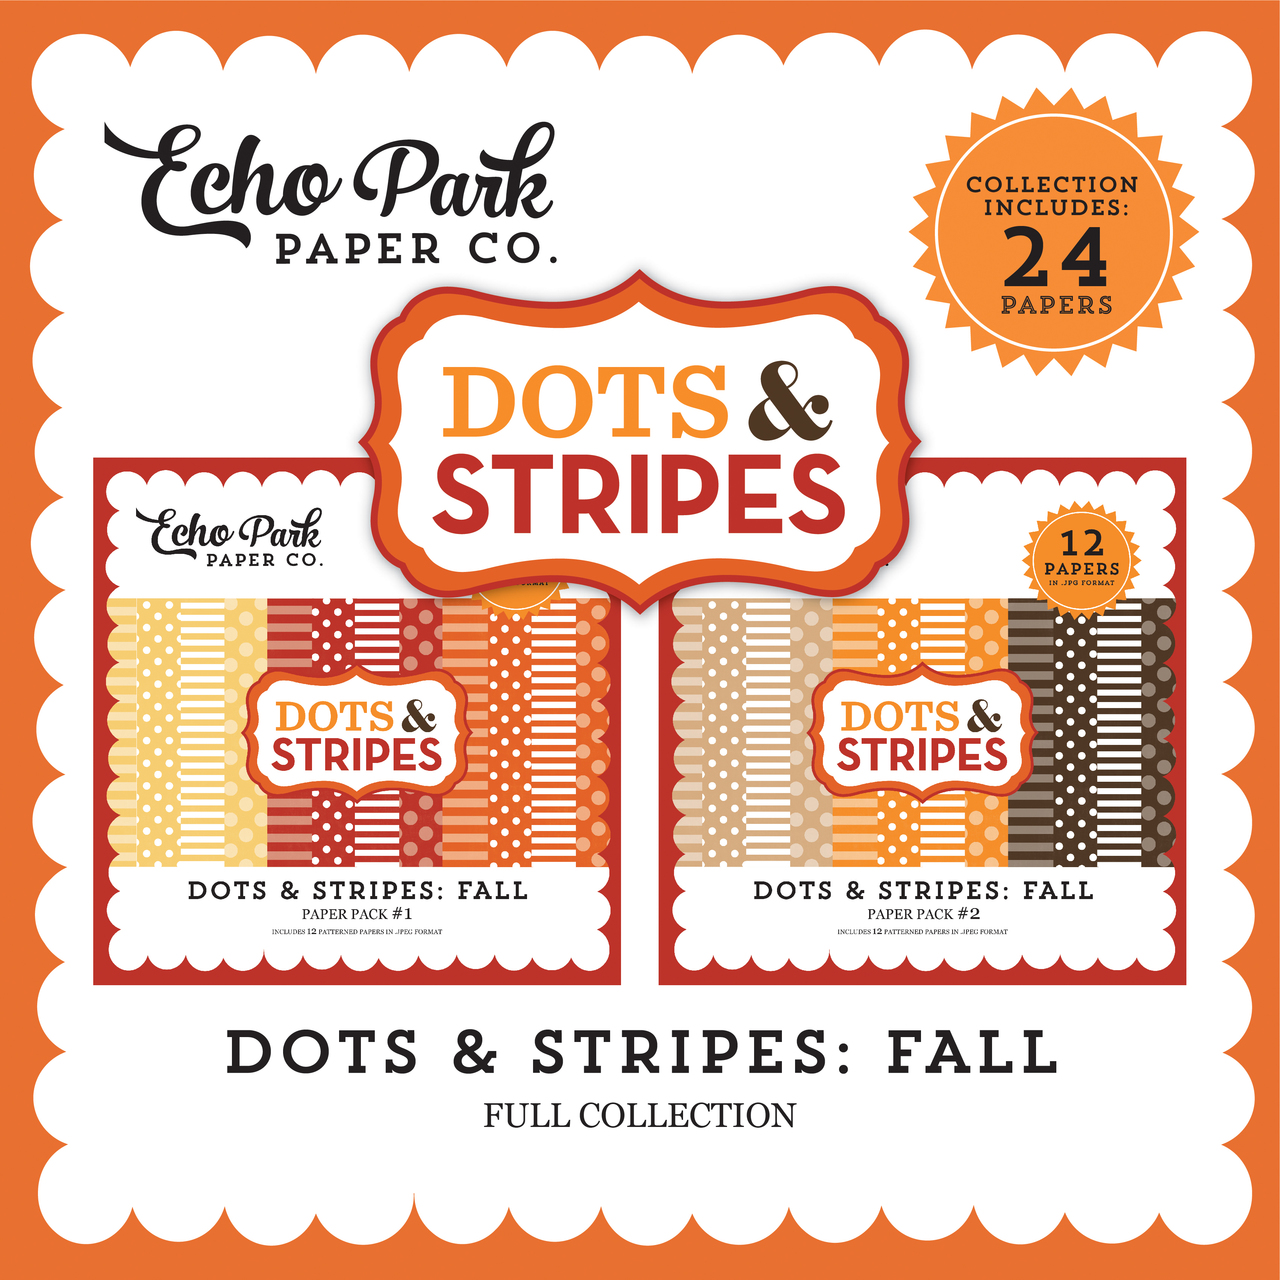 Dots & Stripes: Fall Full Collection